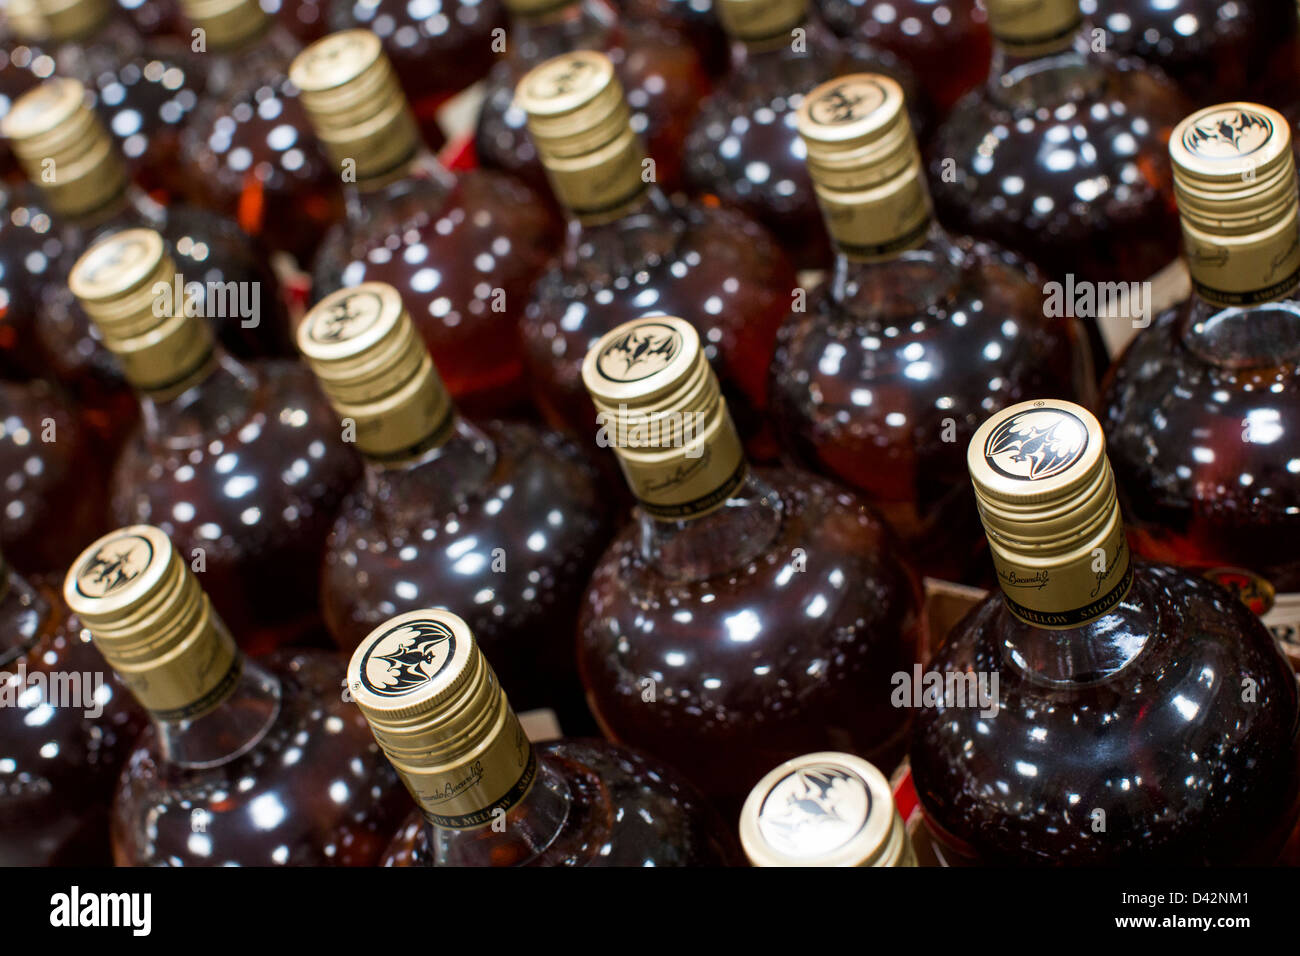 Bacardi rum on display at a costco wholesale warehouse club stock bacardi rum on display at a costco wholesale warehouse club stock photo 54150657 alamy thecheapjerseys Images